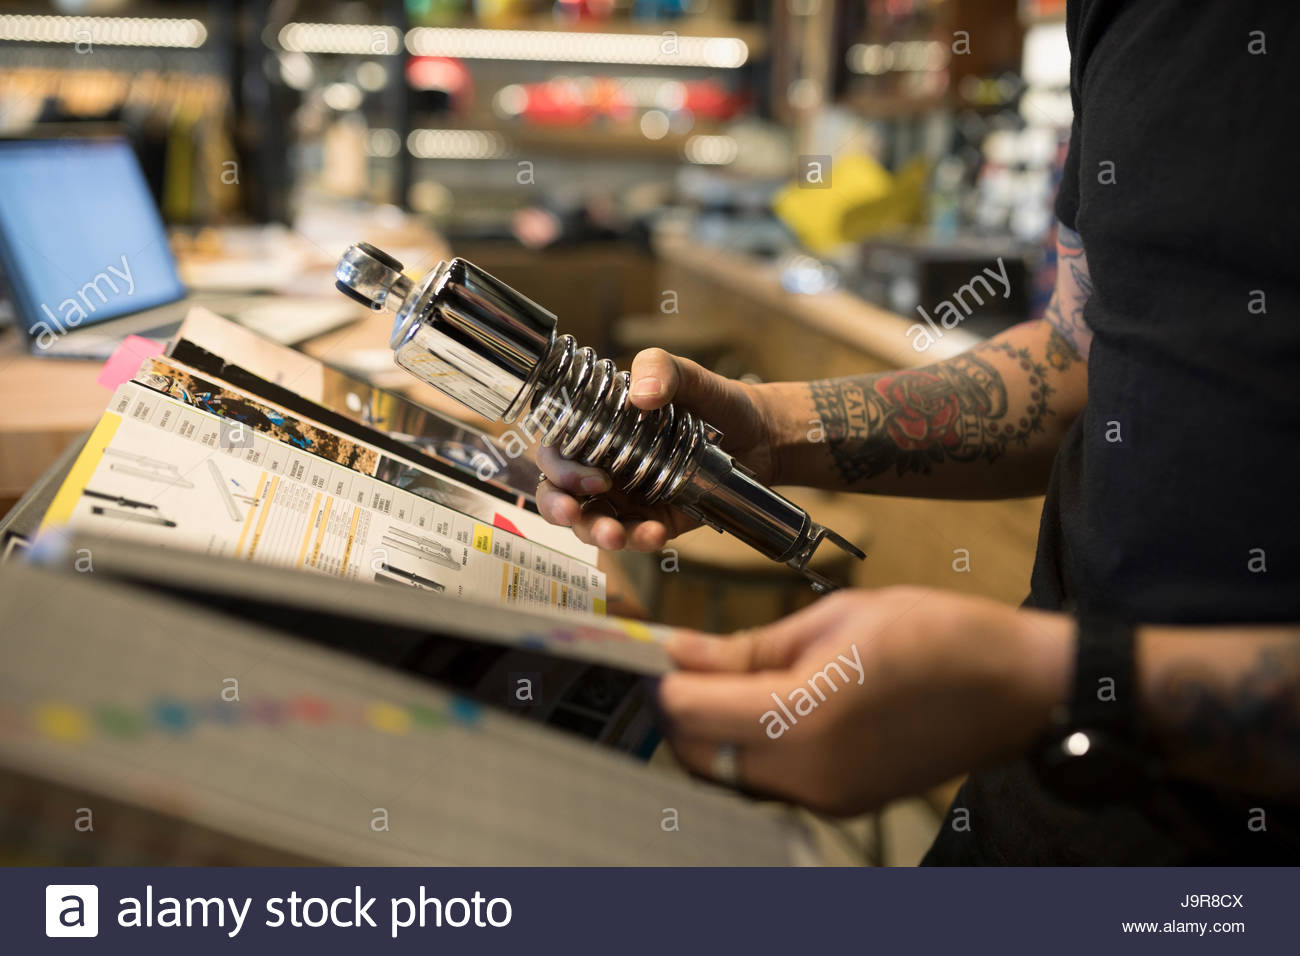 Motorcycle mechanic holding part and browsing catalog in auto repair shop - Stock Image